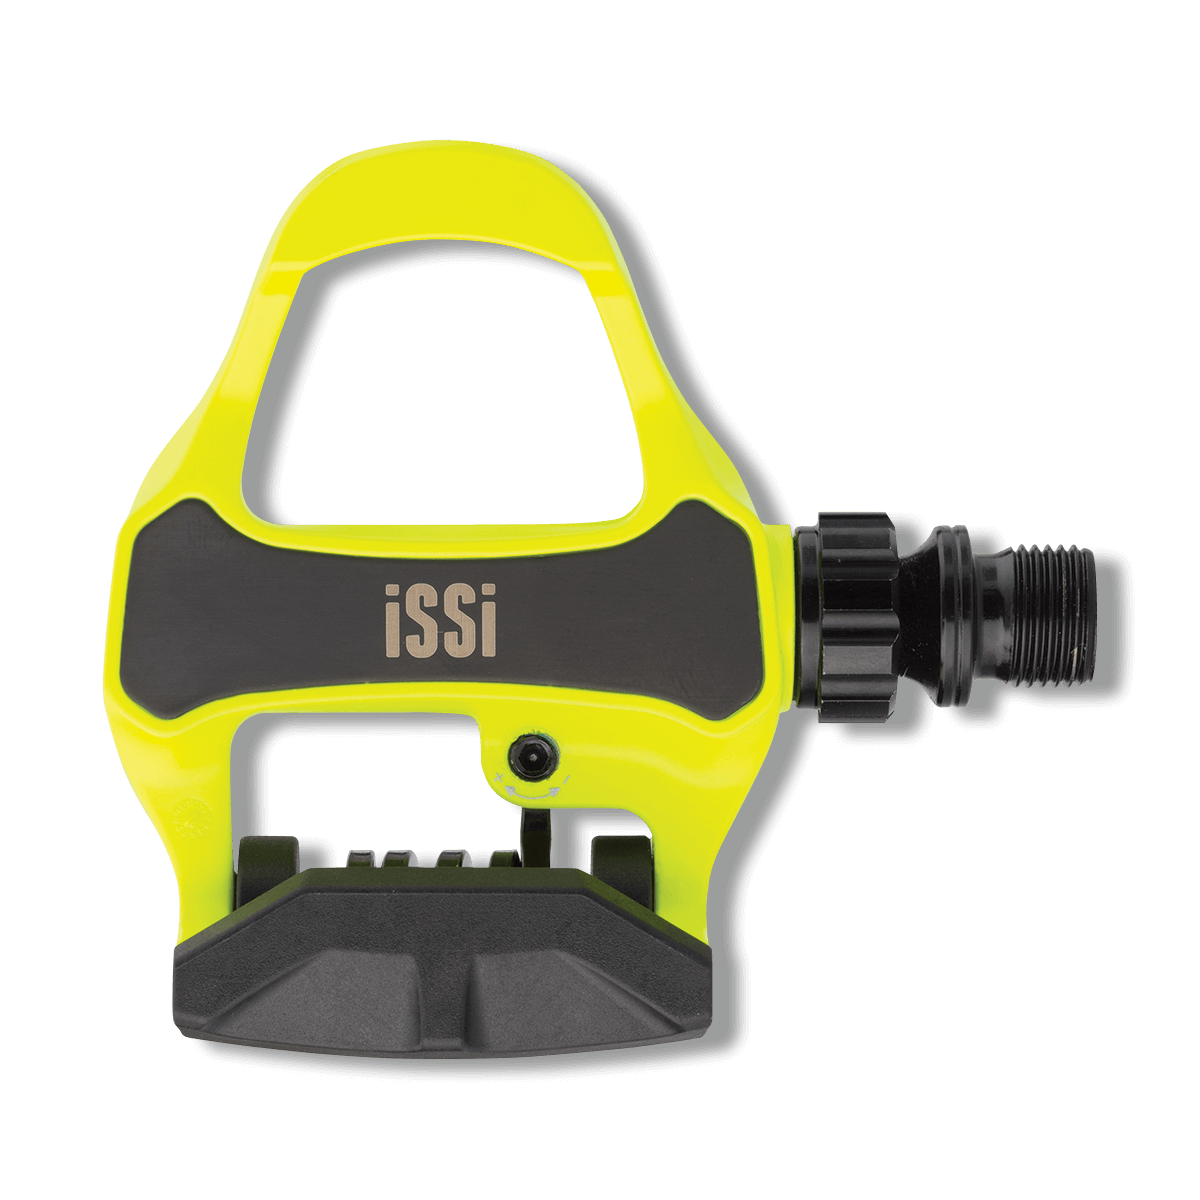 Colored Road Bike Pedals | Split Cleat System Pedal | iSSi Road